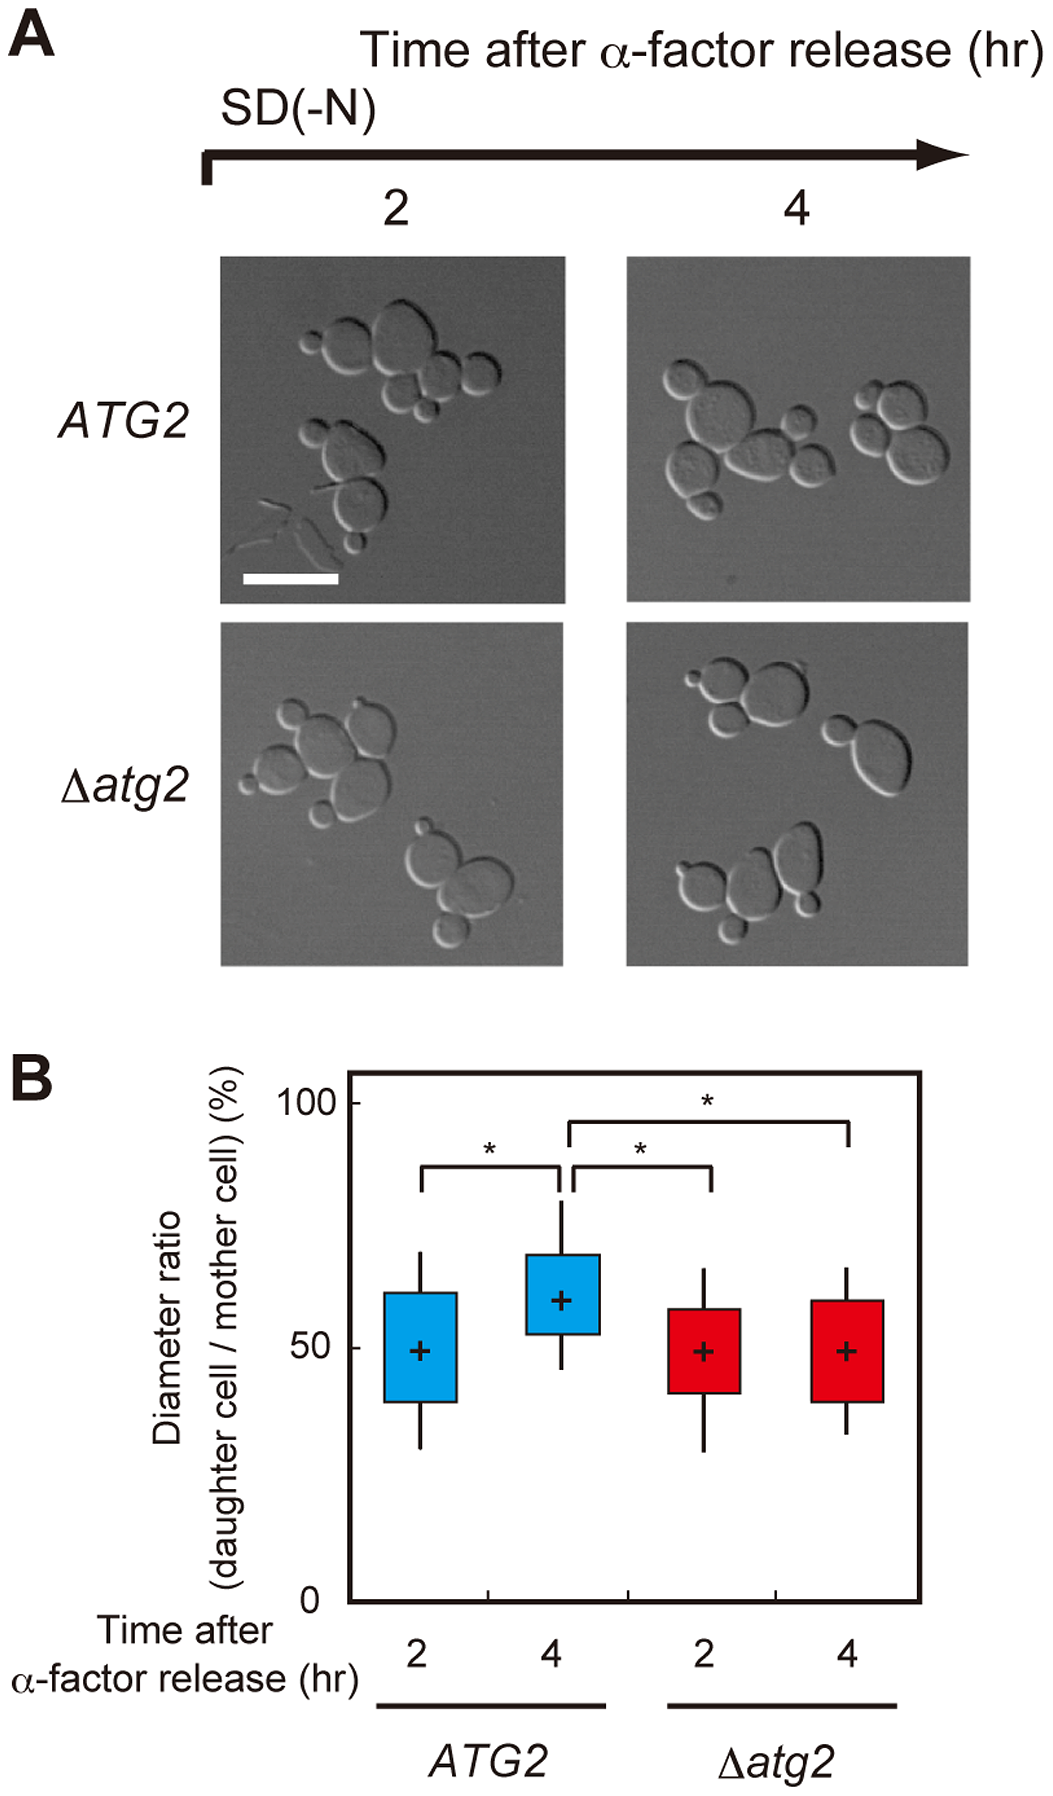 Autophagy is important for cell growth under nutrient starvation conditions.